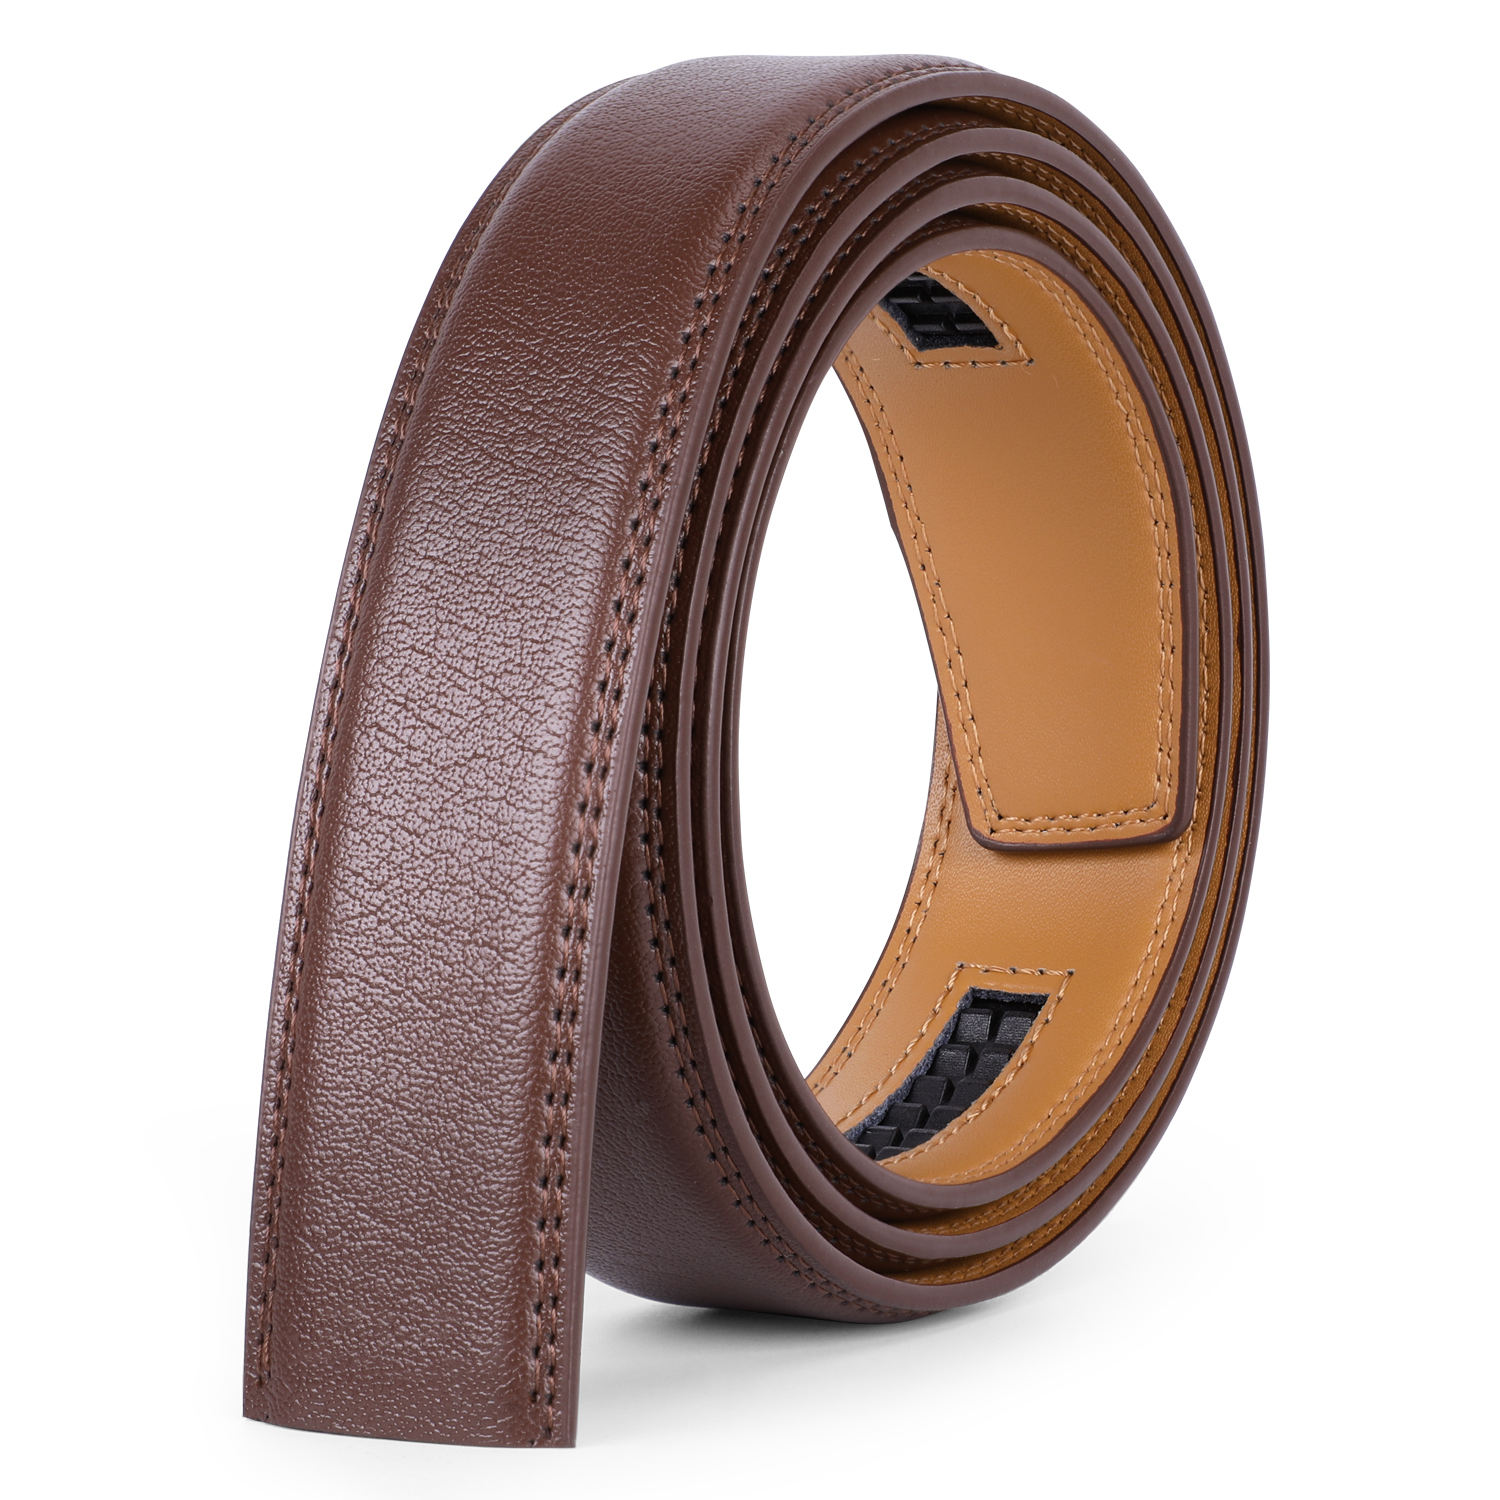 2020 Fashion Automatic Leather Belt Strap for Business Men